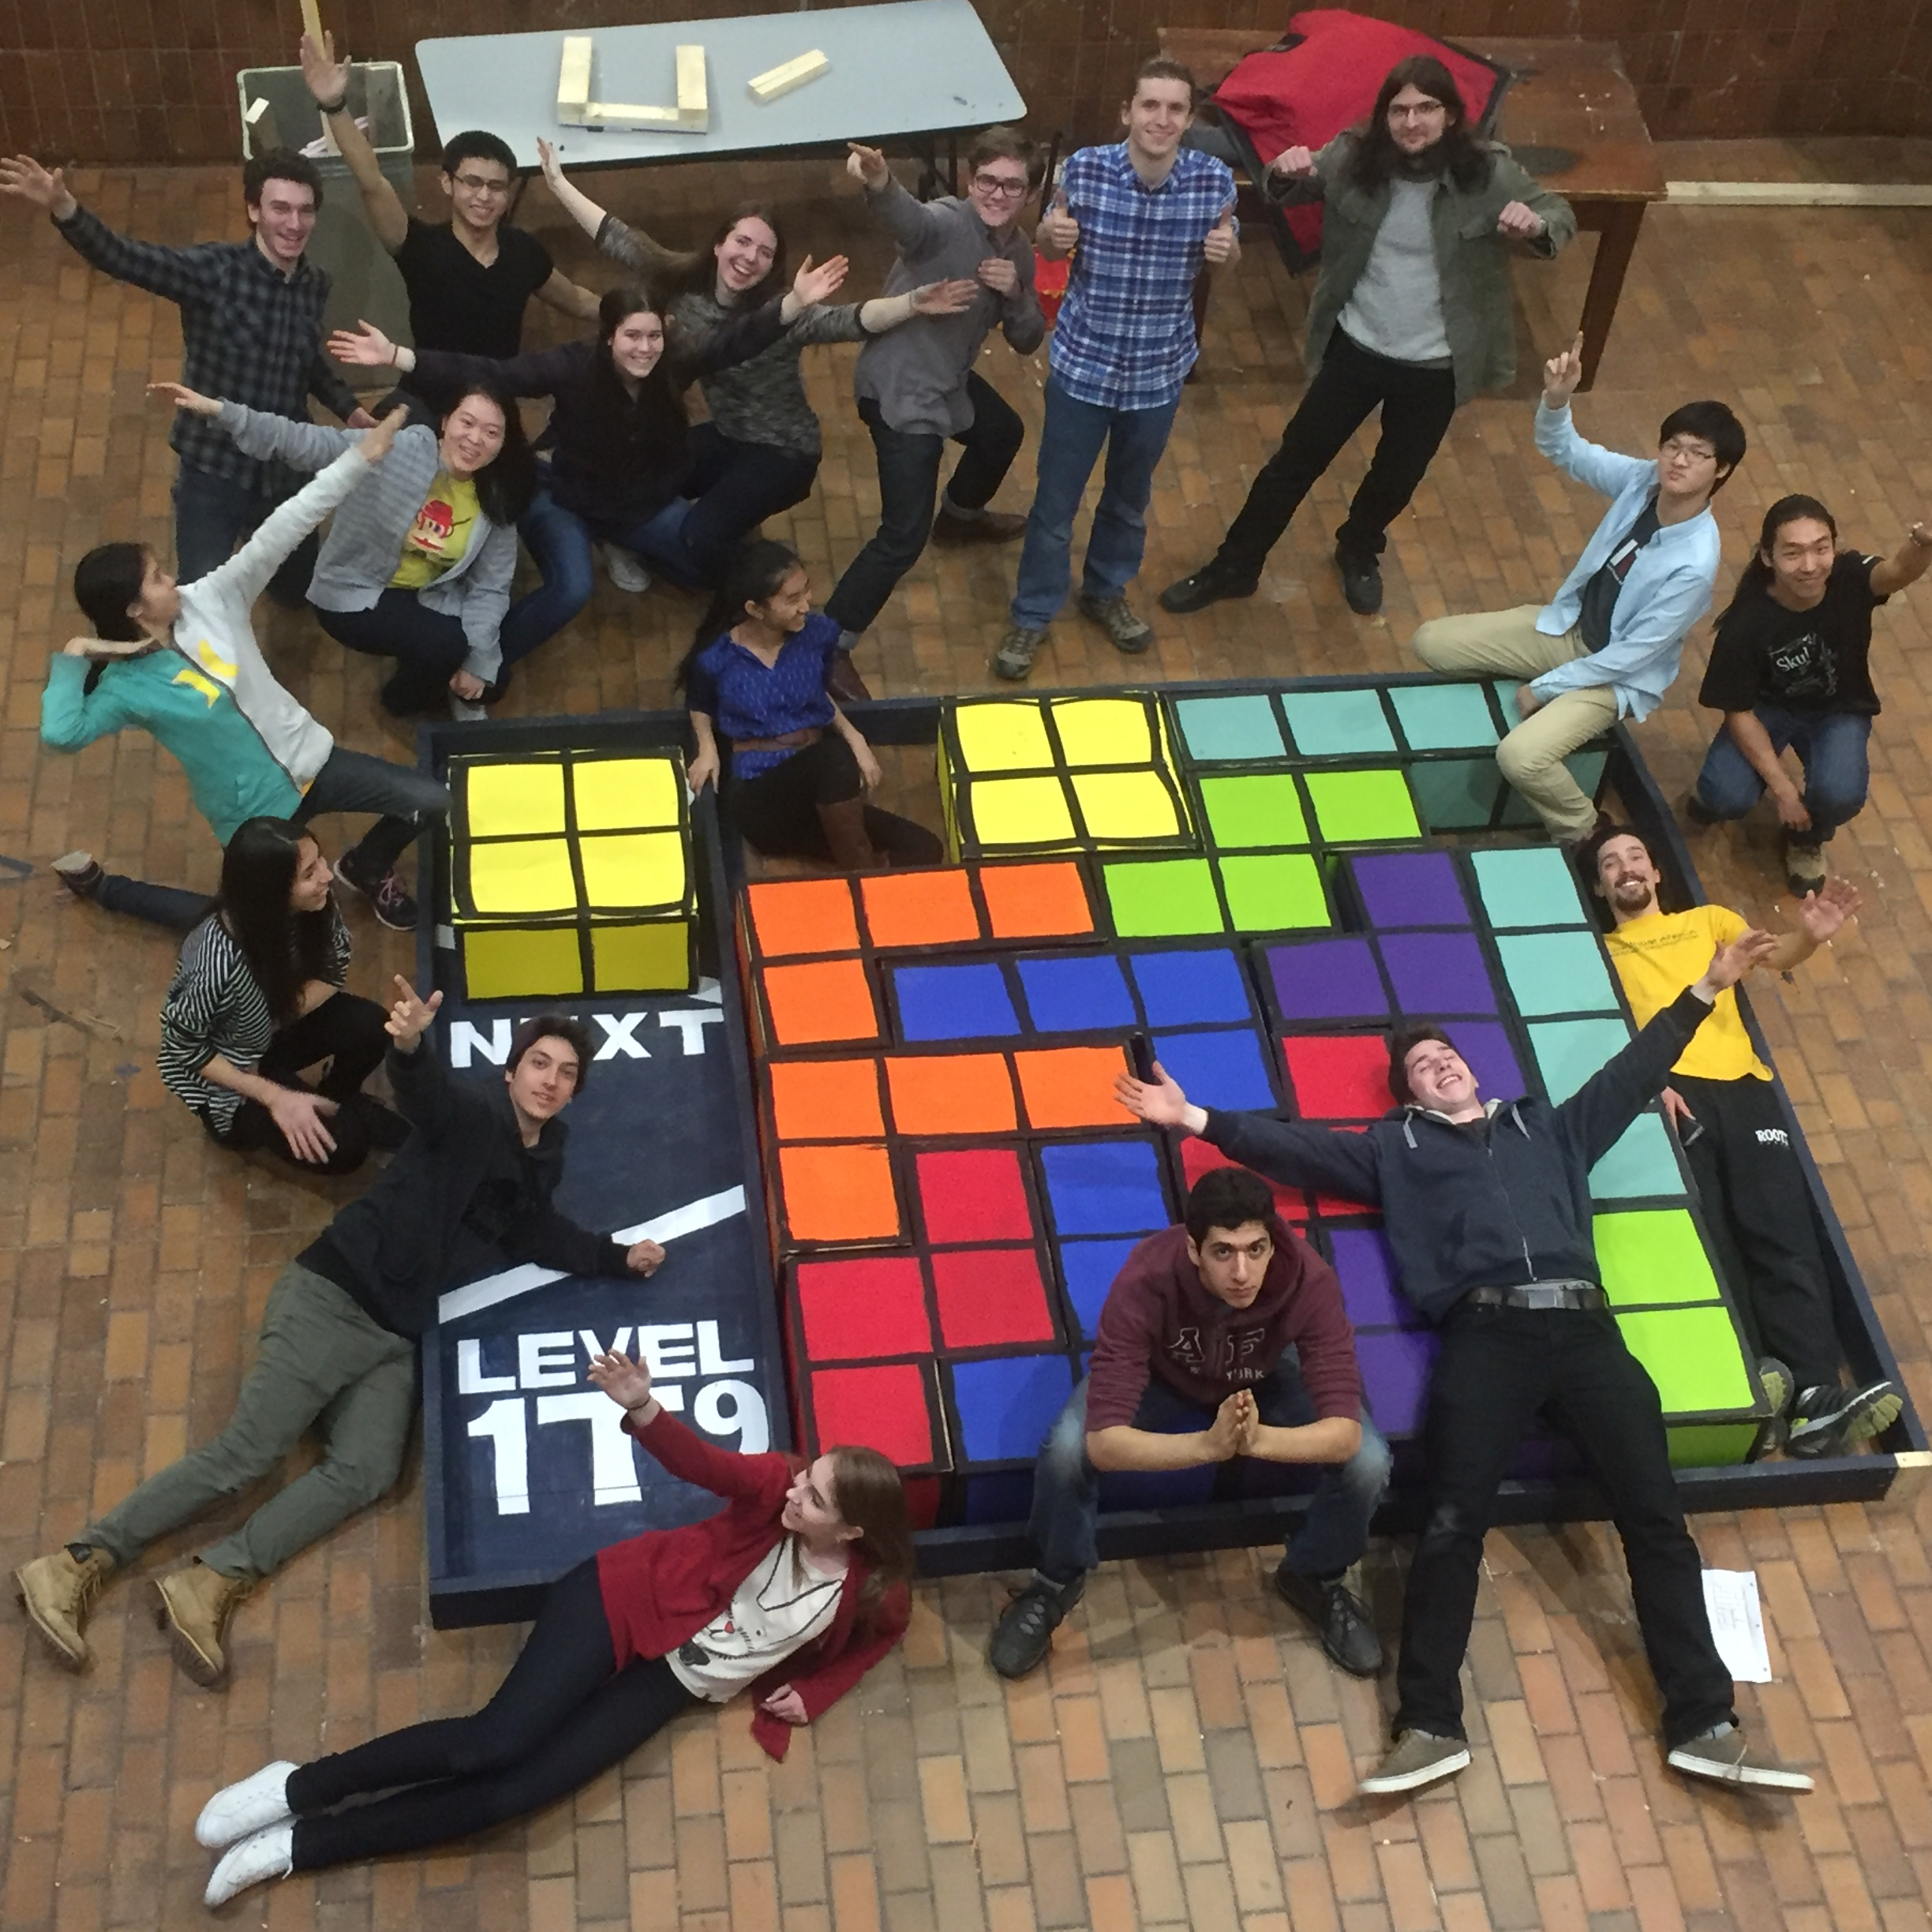 GIANT TETRIS GAME